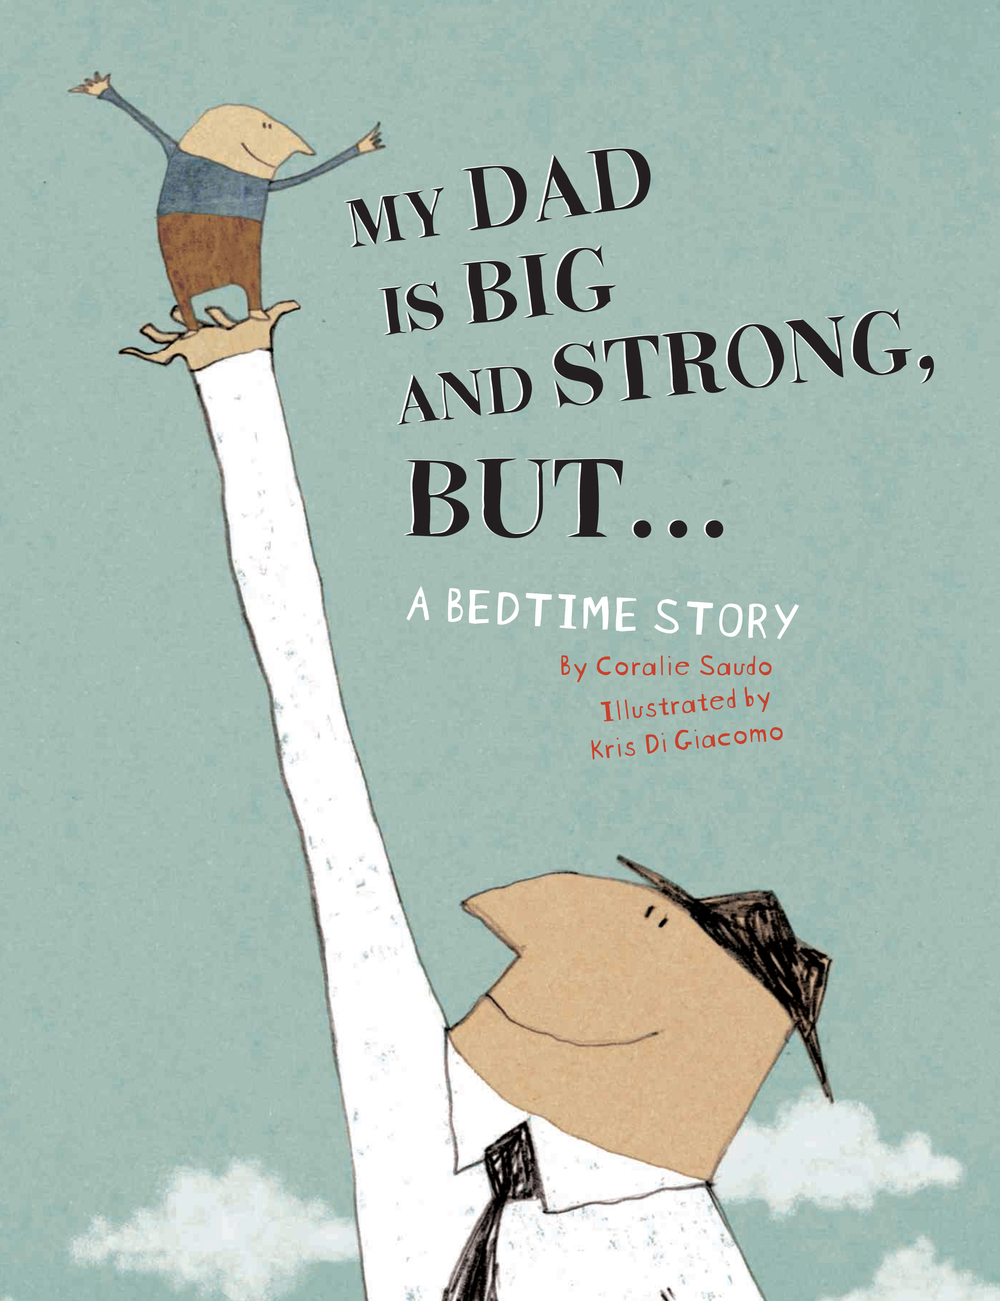 MY DAD IS BIG AND STRONG, BUT . . . , by Coralie Saudo, illustration by Kris Di Giacomo